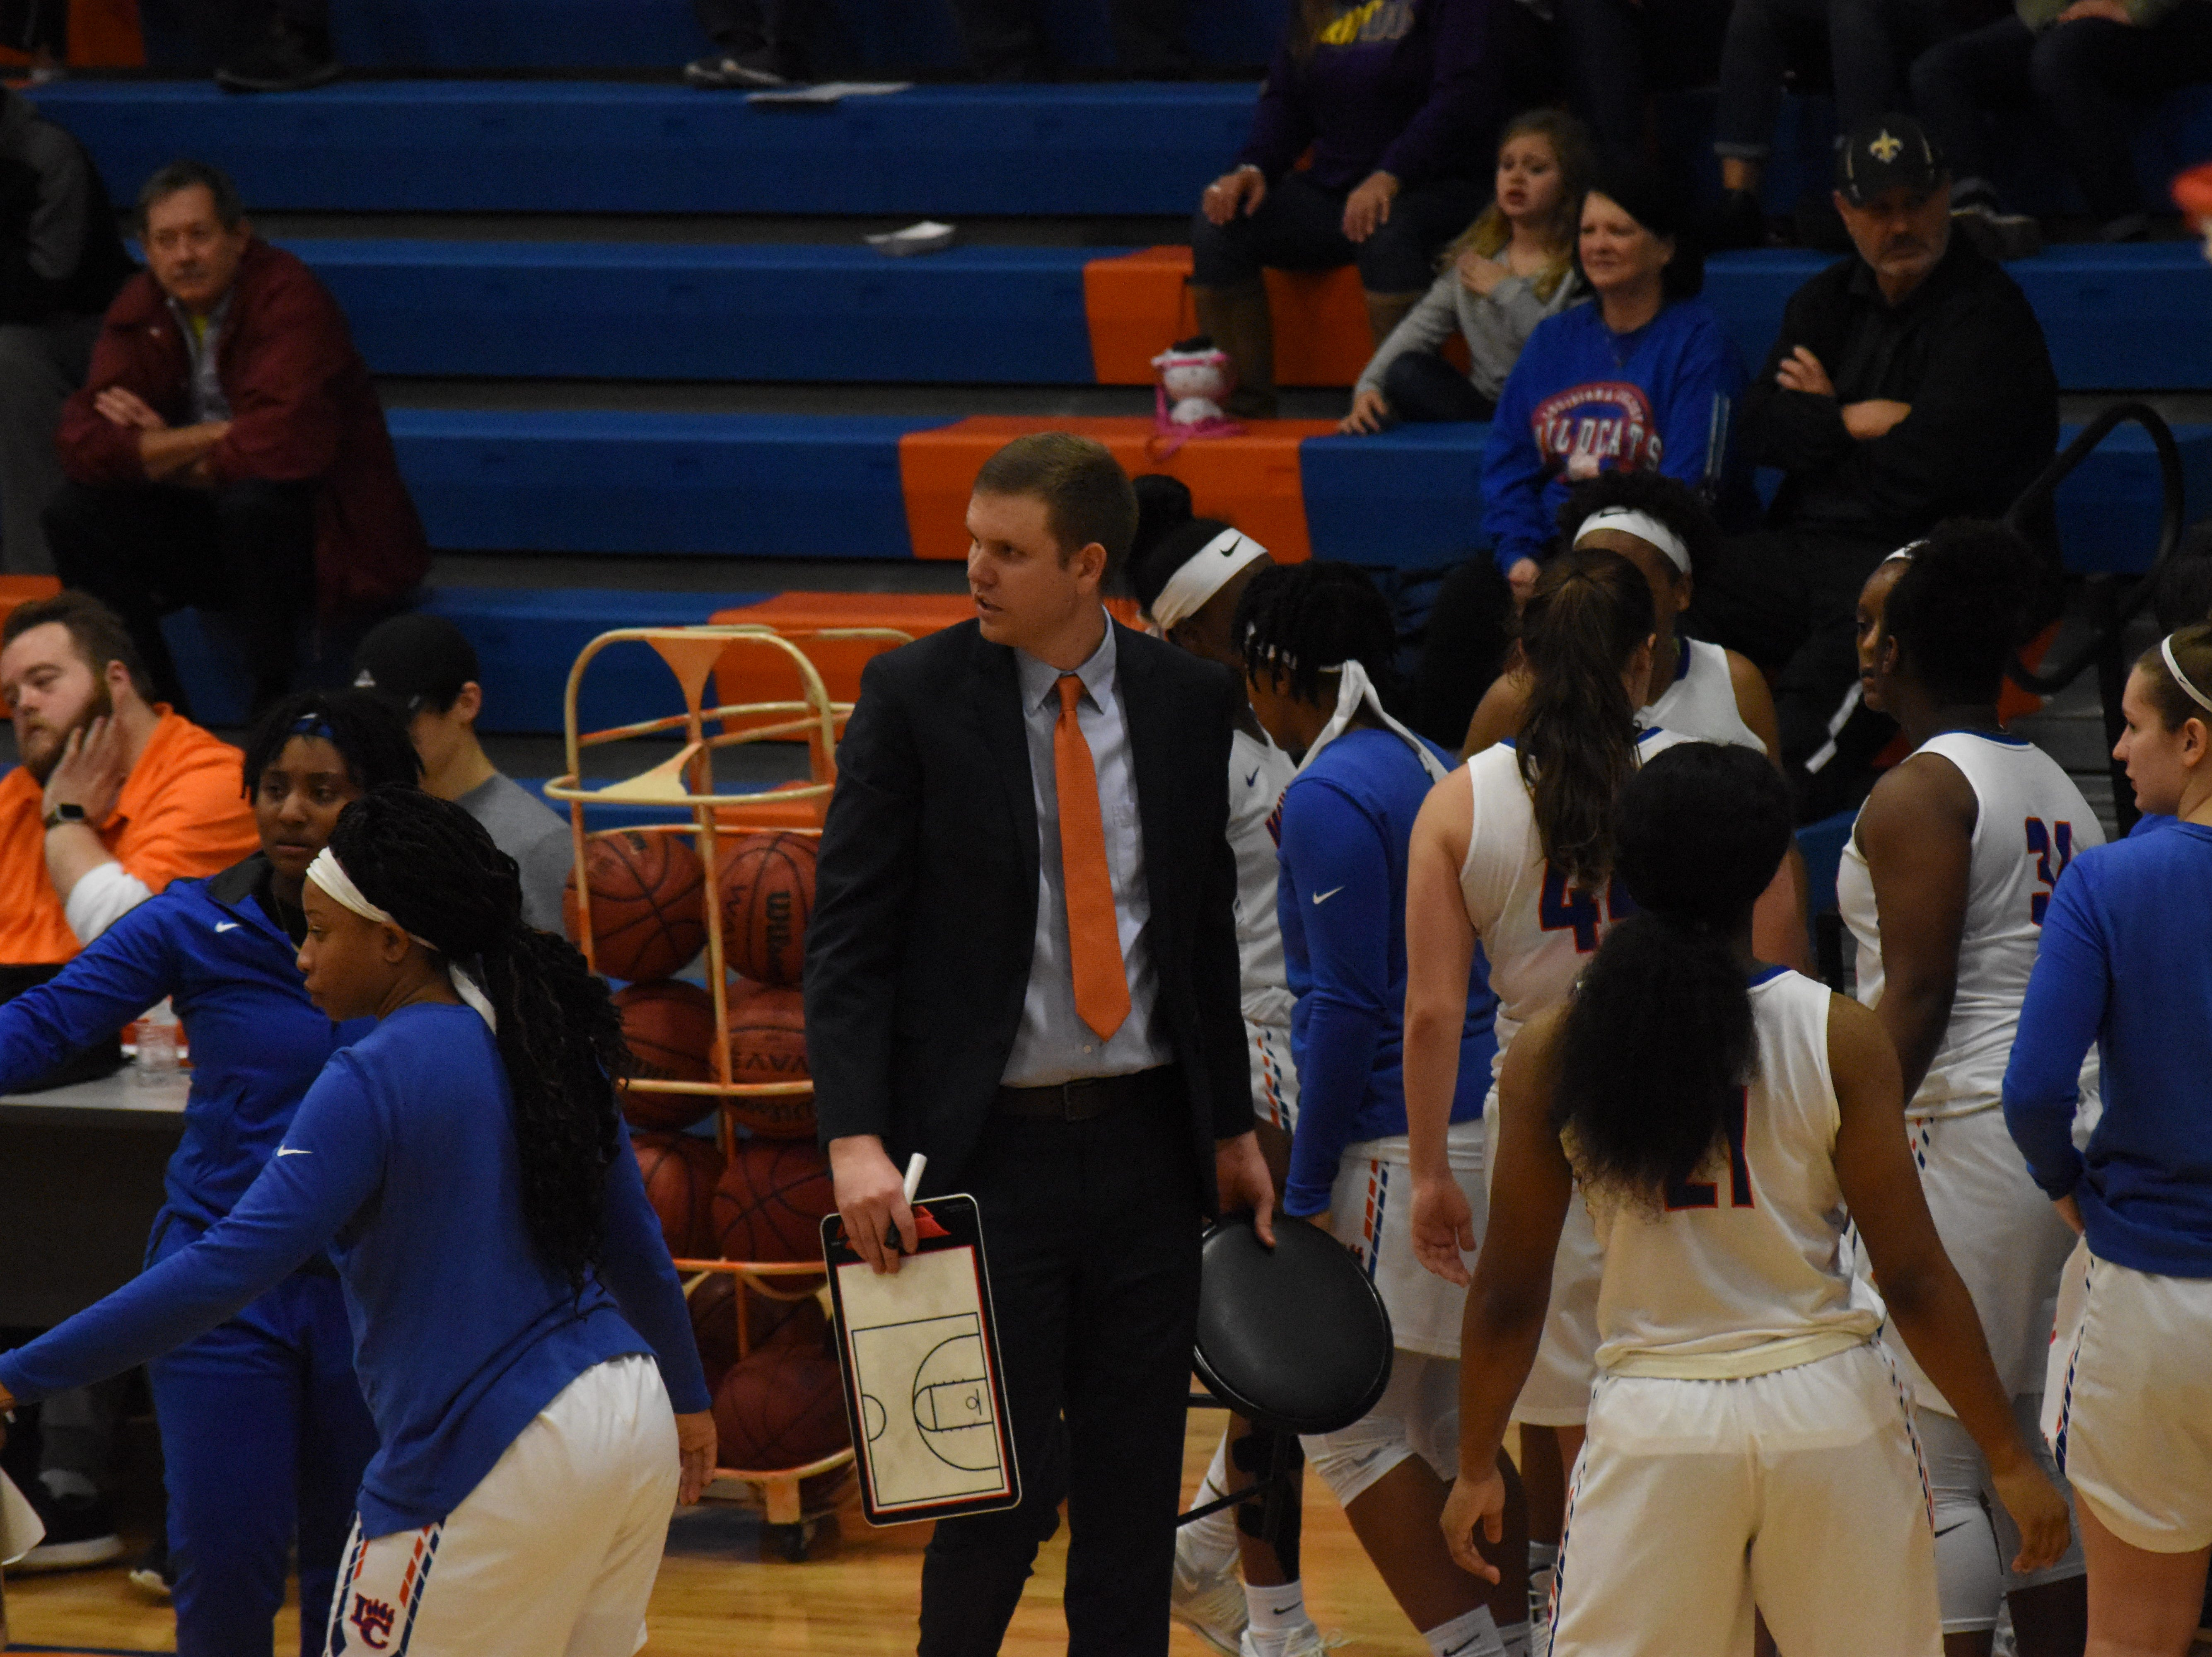 The Lady Wildcats of Louisiana College play the Lady Tornadoes of Concordia University Thursday, Jan. 3, 2019 at H.O. West Fieldhouse on the LC campus in Pineville. Concordia won 72-70.